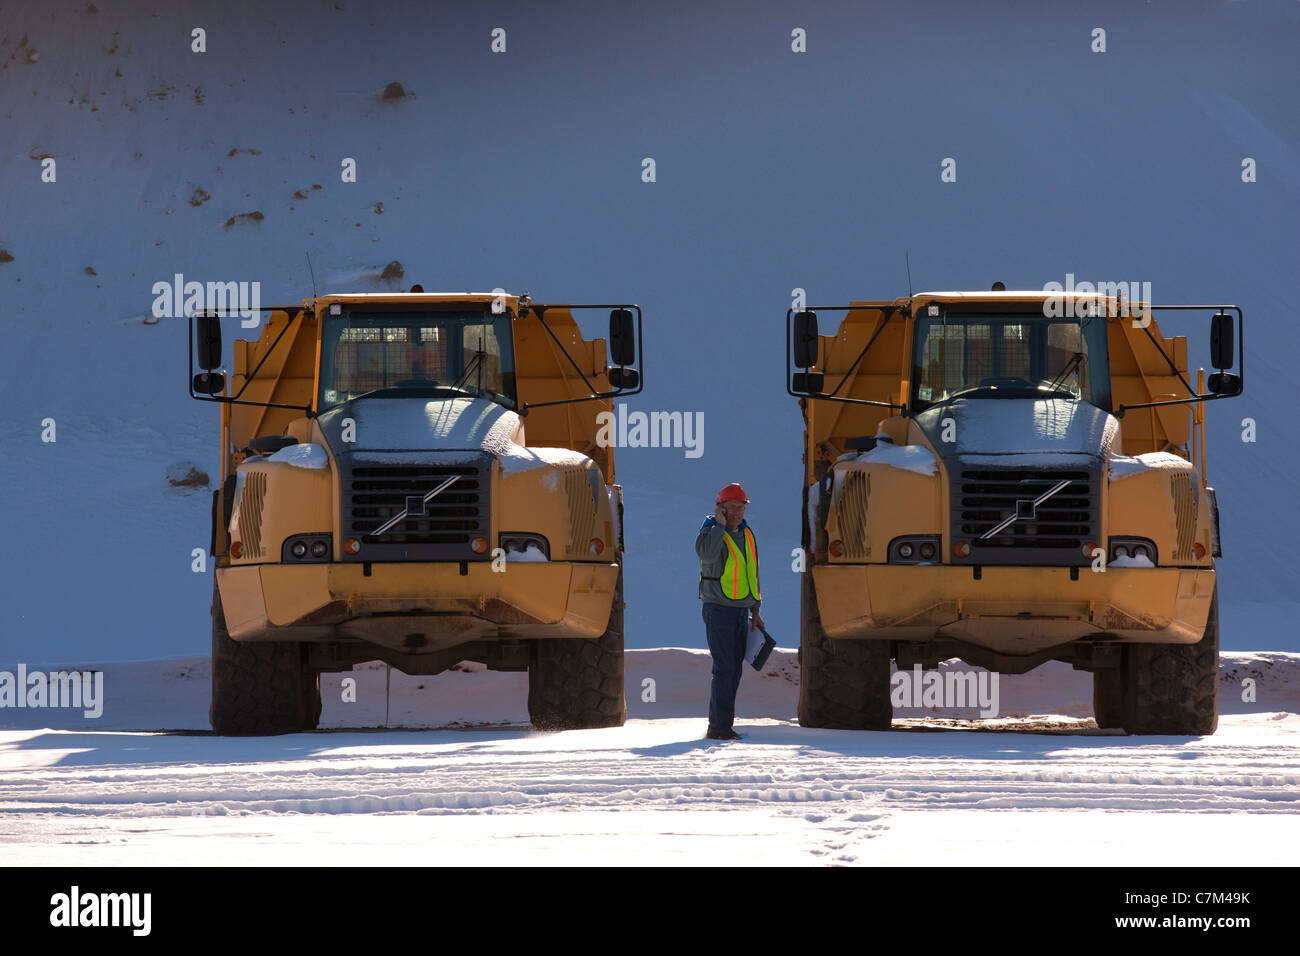 Engineer with earth movers at a construction site - Stock Image